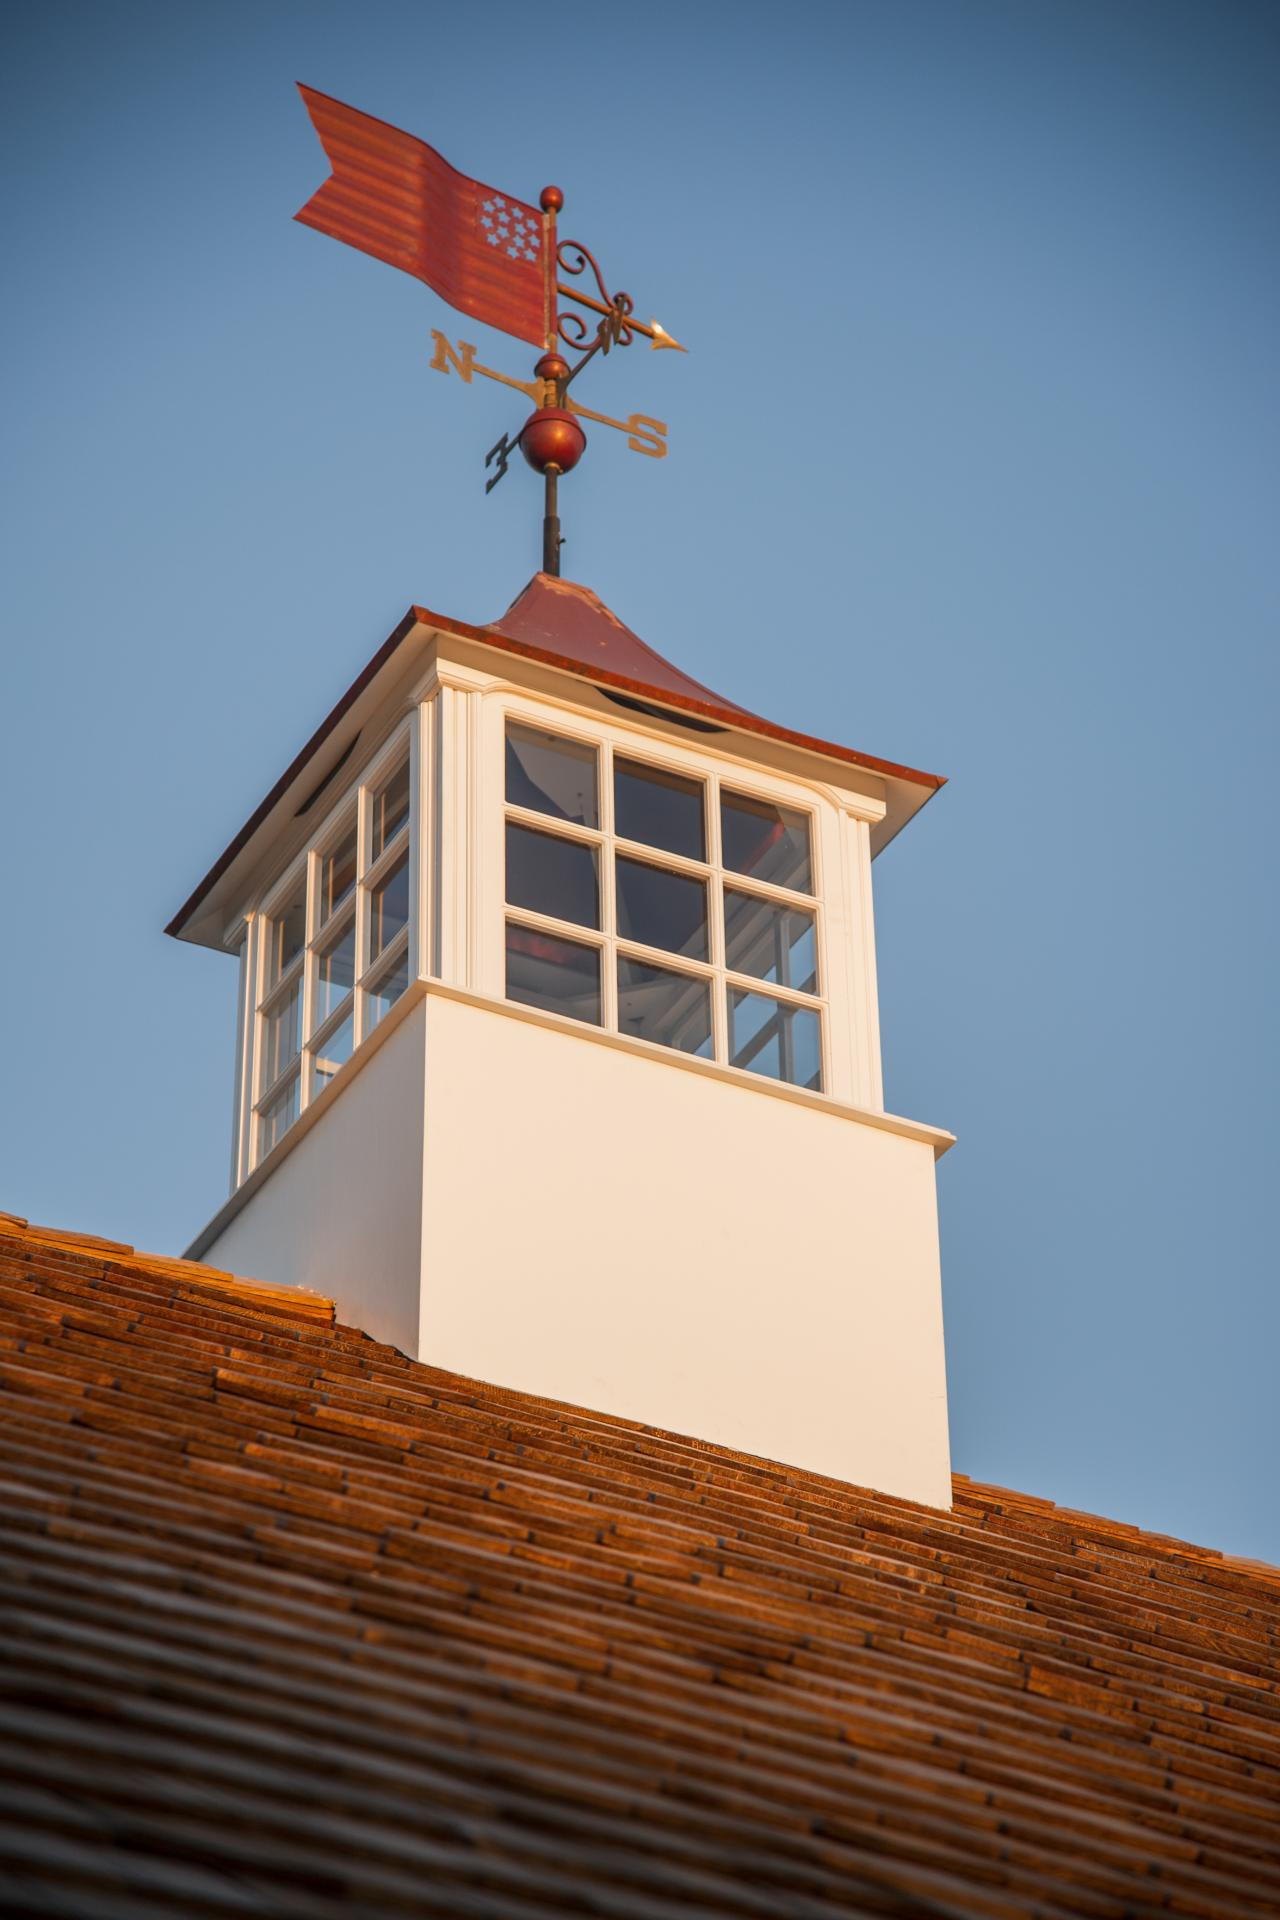 dh2015_garage_weather-vane-closeup_v.jpg.rend.hgtvcom.1280.1920